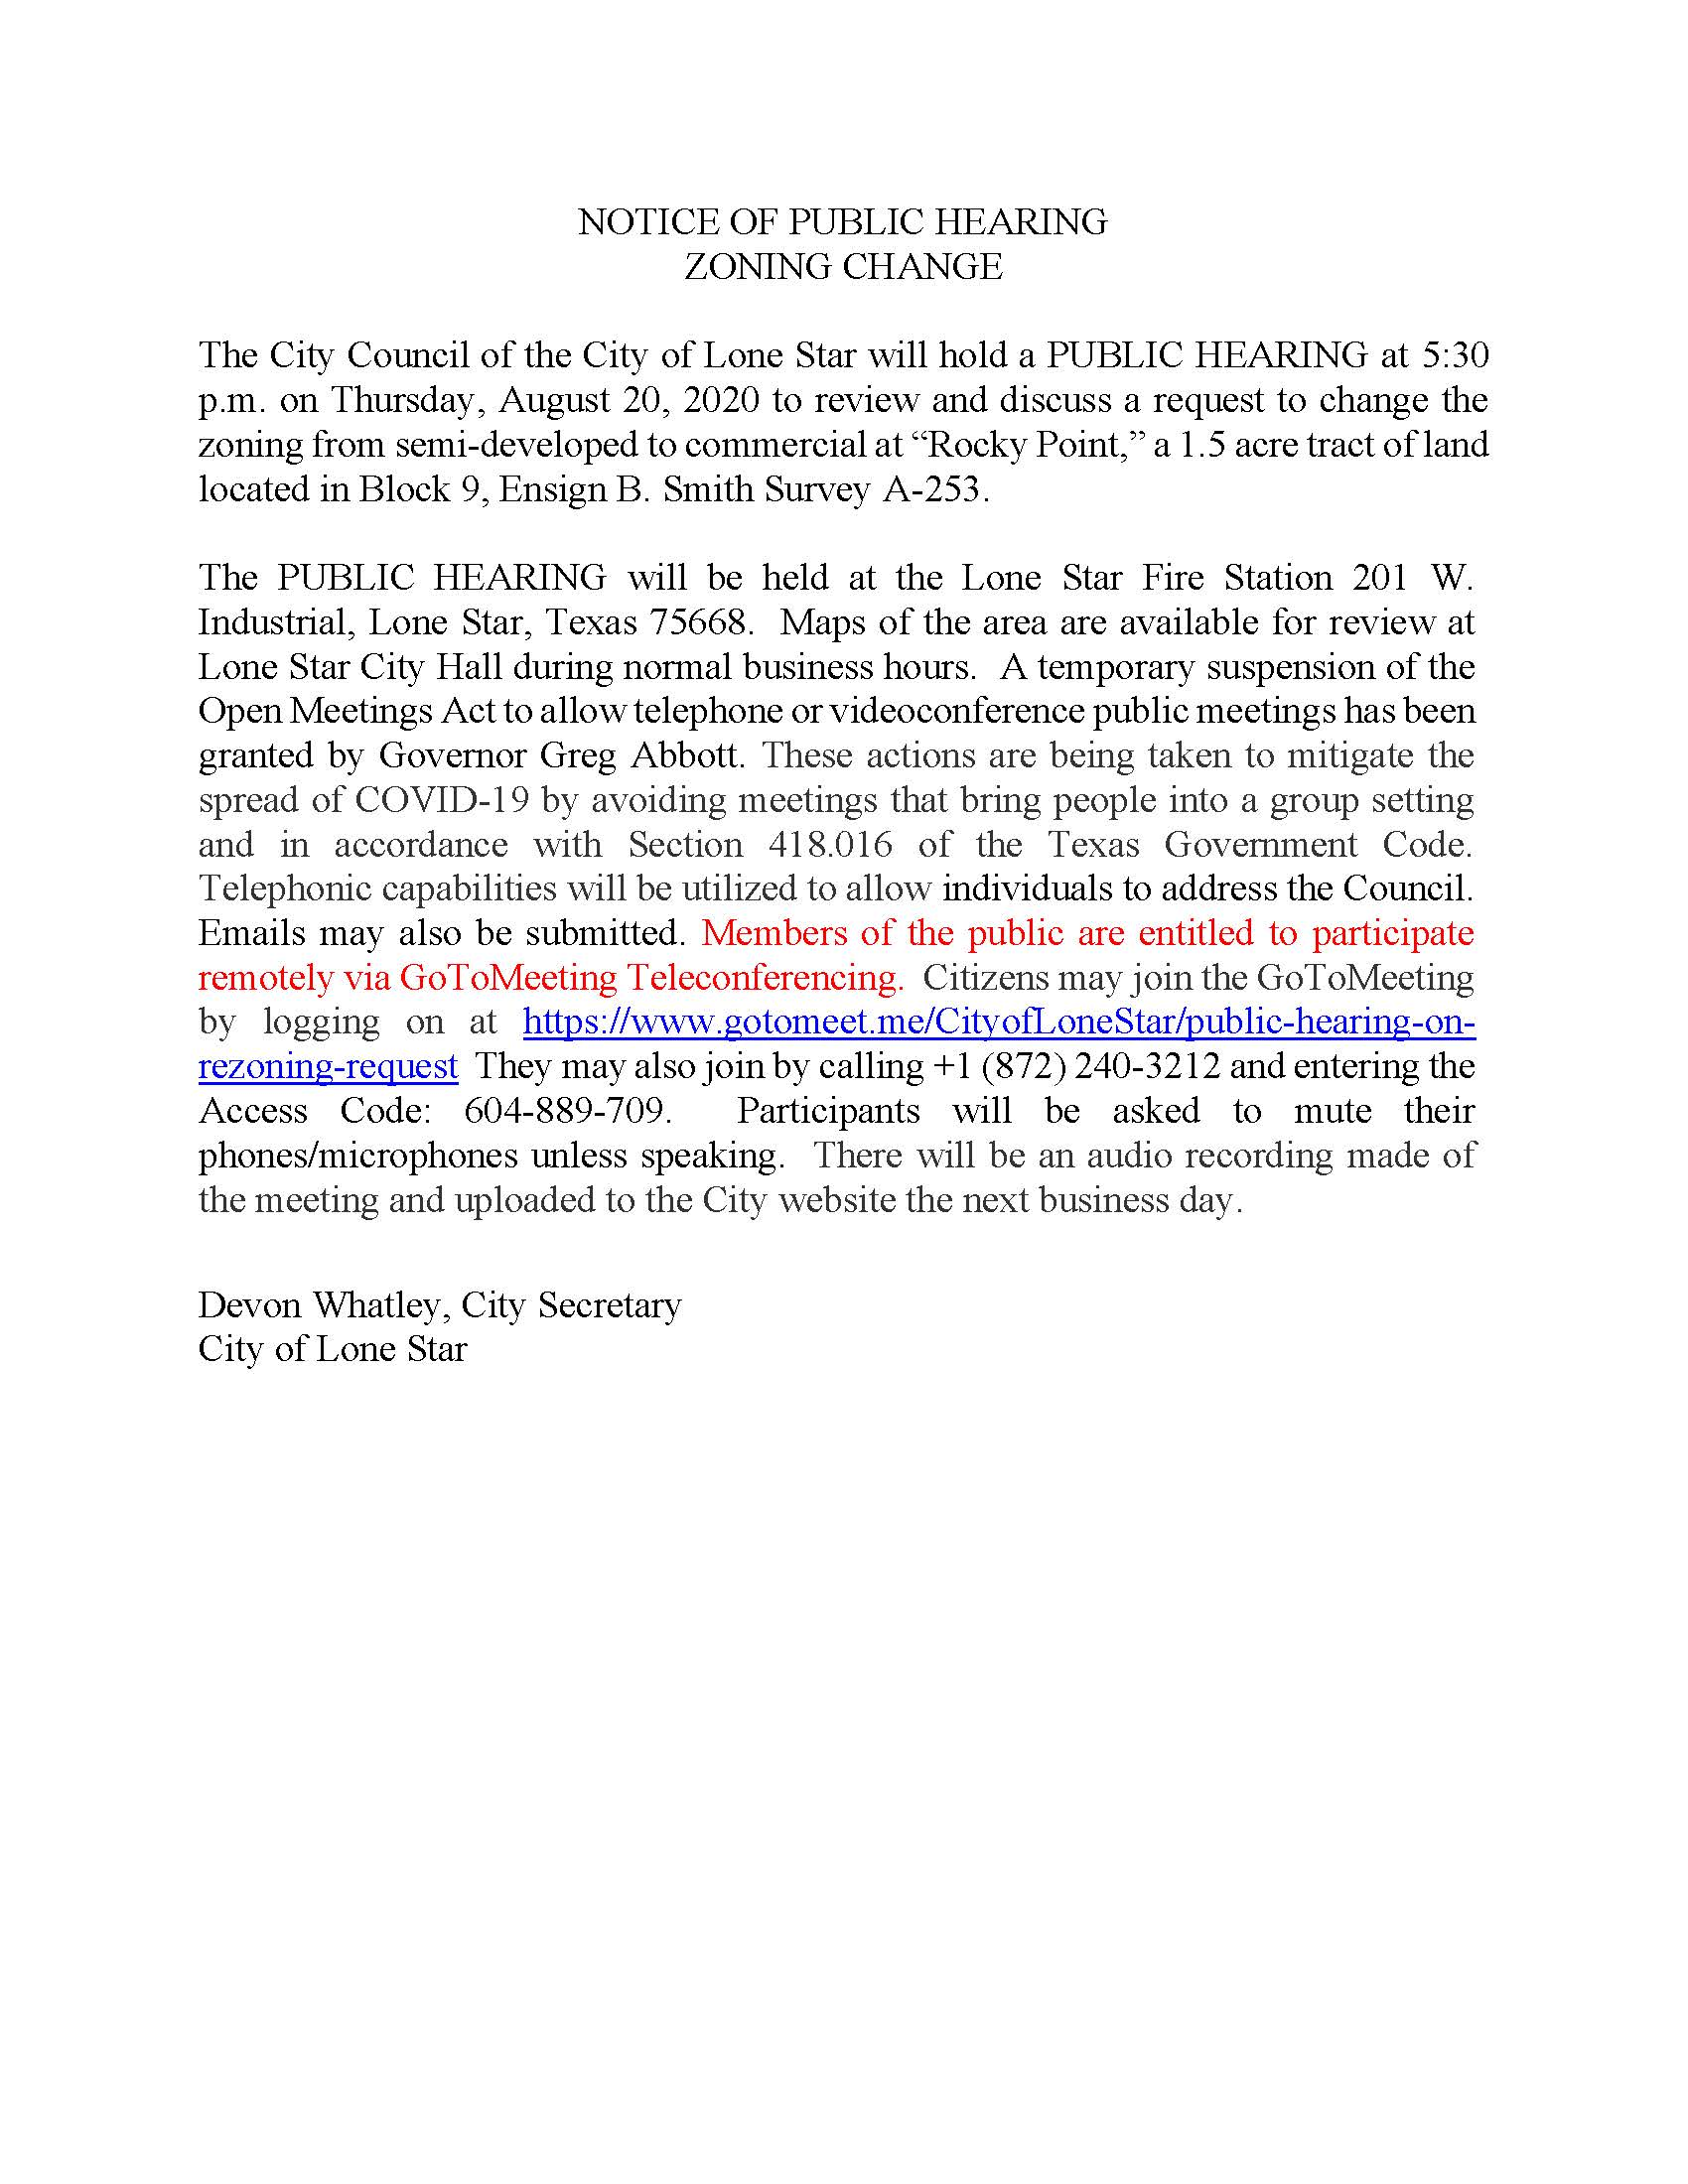 Notice of Public Hearing for Rezoning